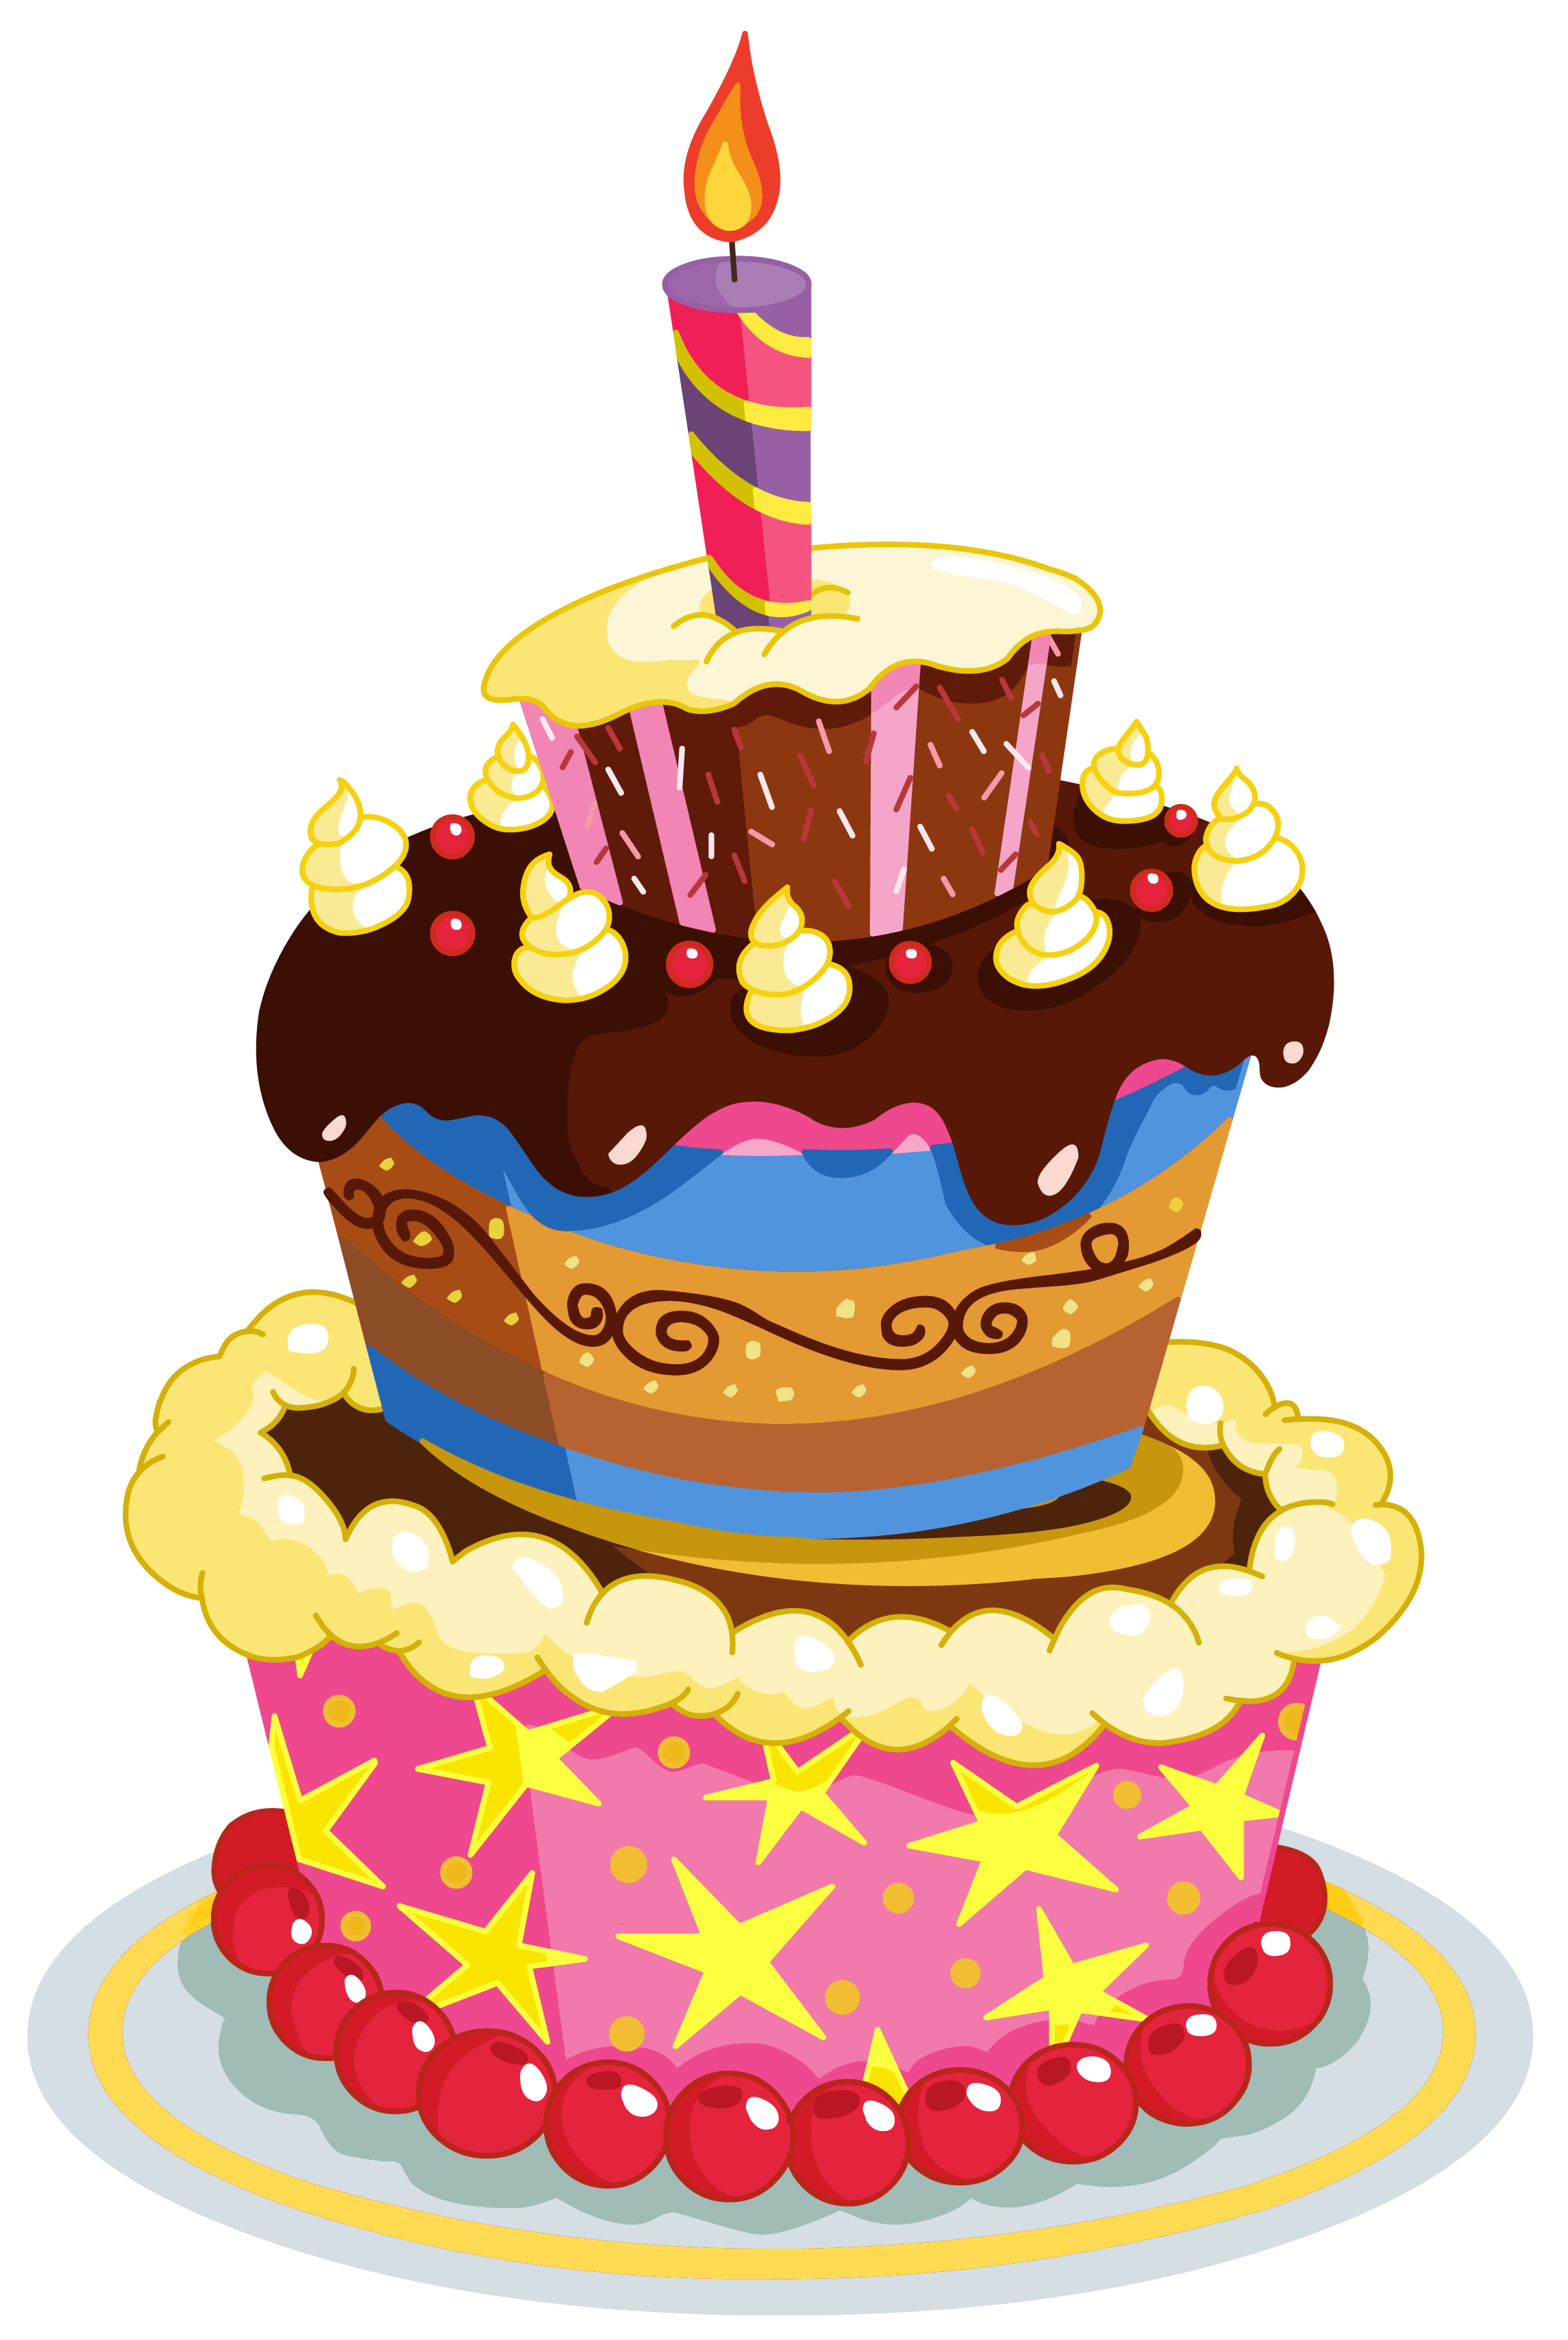 transparent download Cake clipart transparent background. Colorful birthday png gallery.